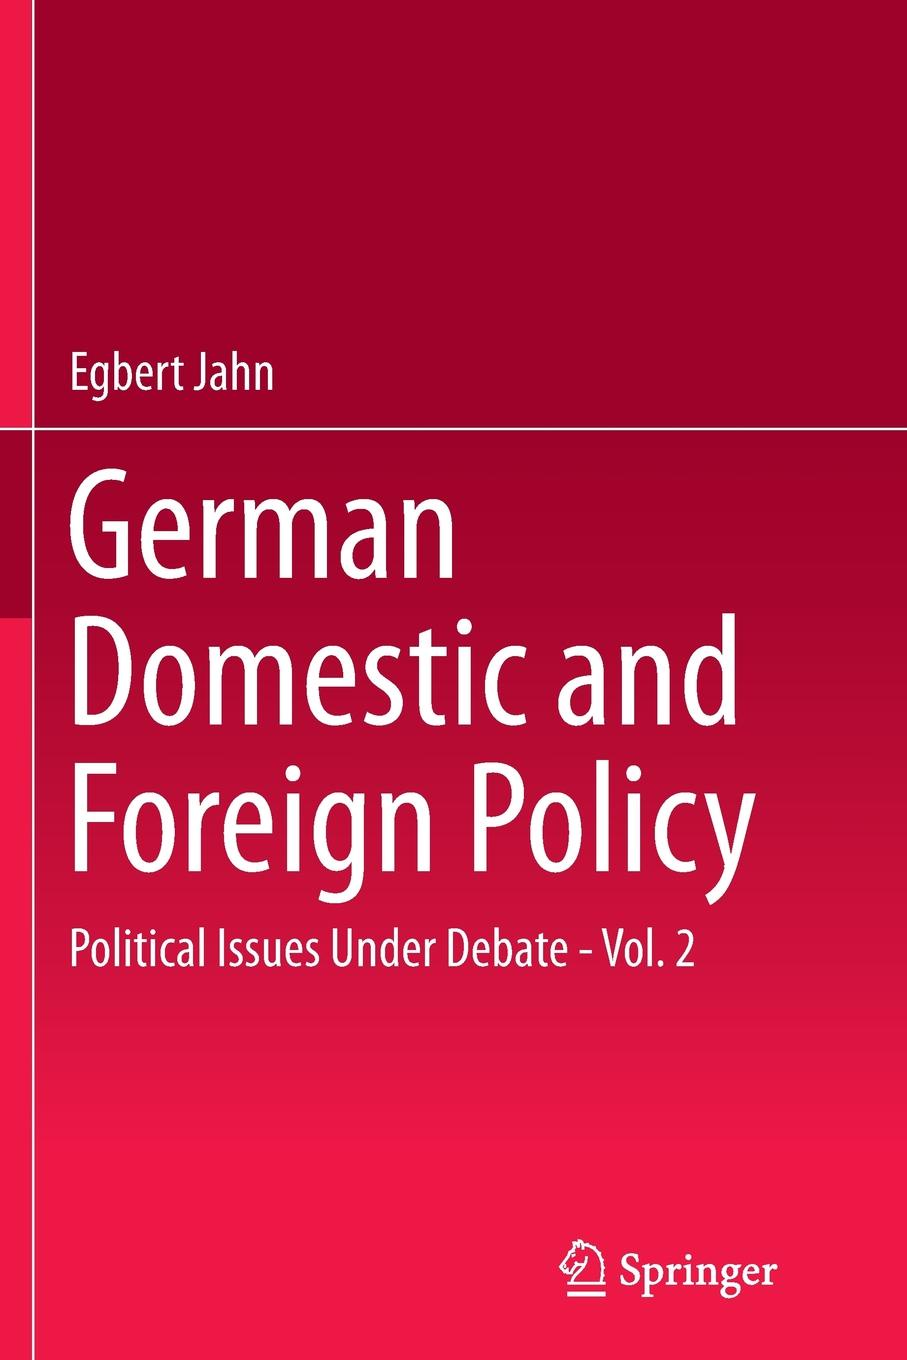 Egbert Jahn German Domestic and Foreign Policy. Political Issues Under Debate - Vol. 2 отсутствует the foreign quarterly review vol 2 3